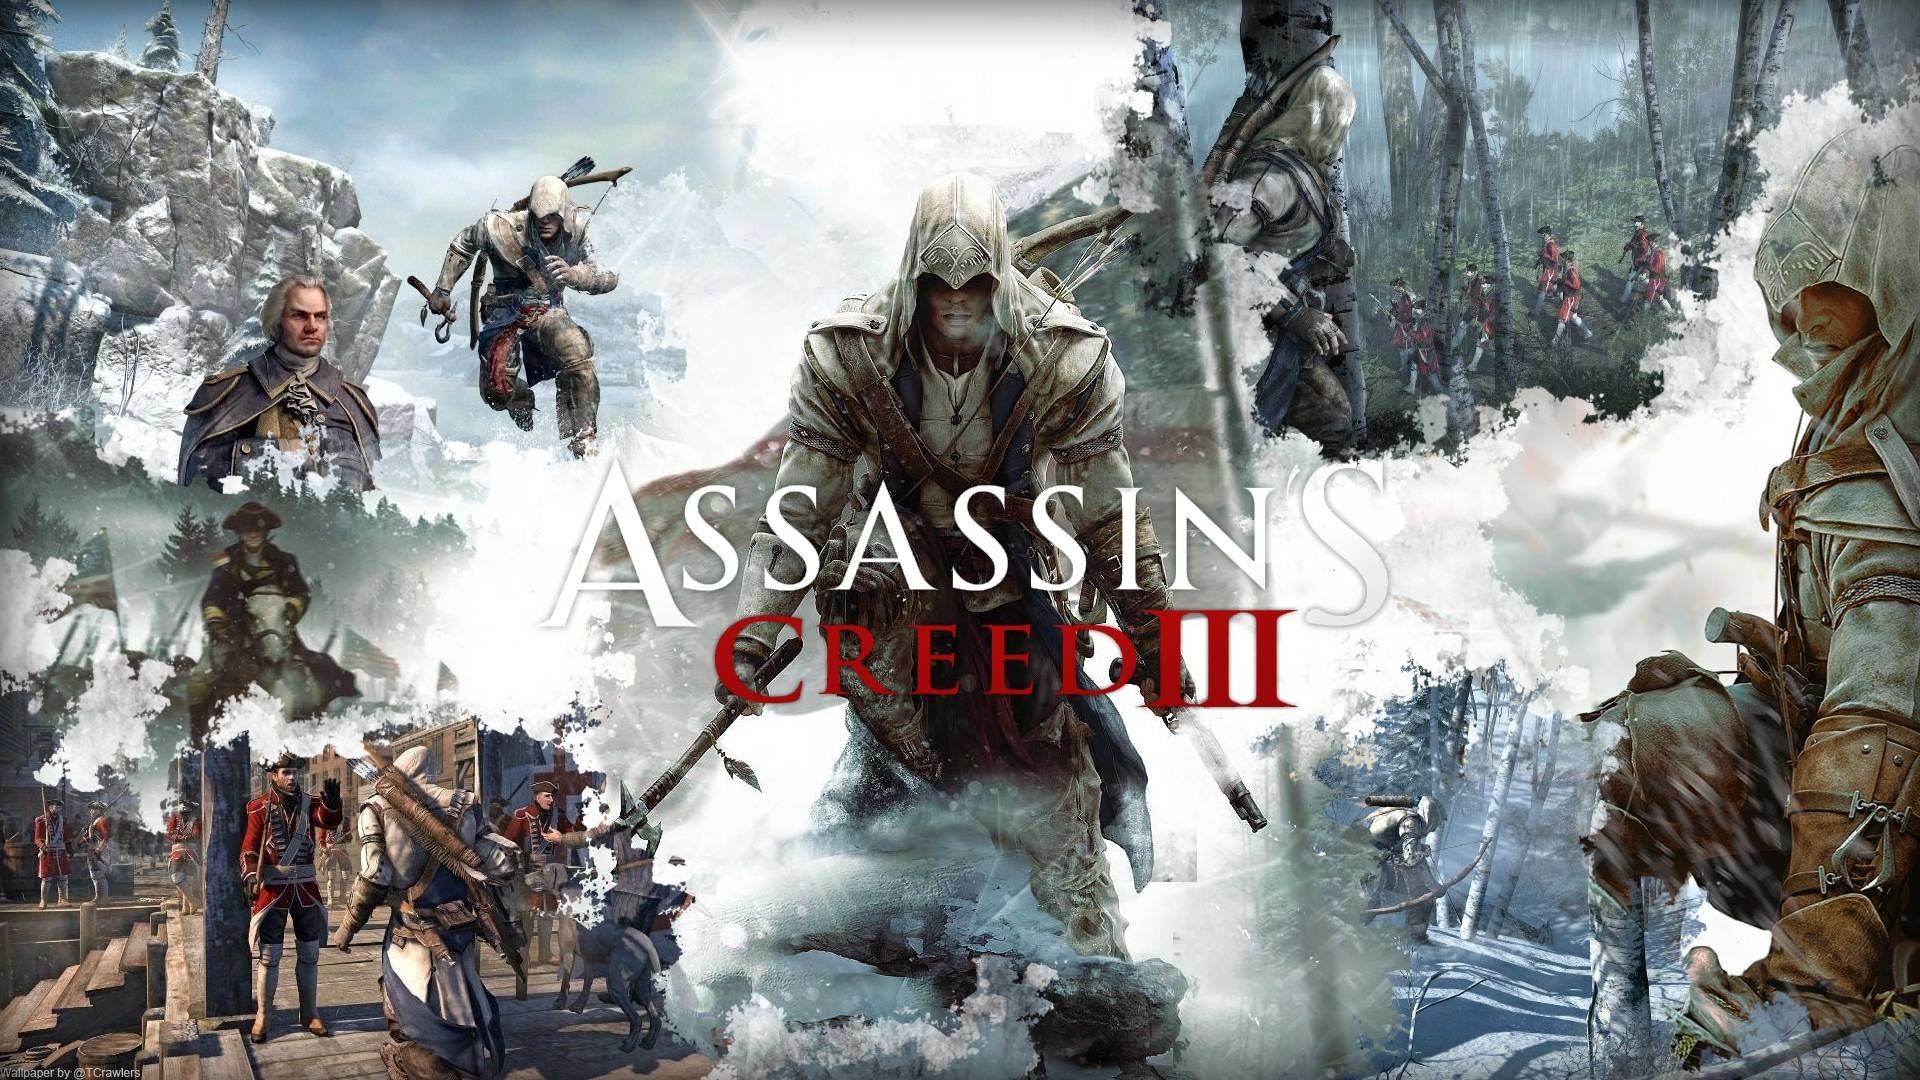 1920x1080 Assassins Creed 3 Desktop Wallpaper, Pictures | Cool Wallpapers